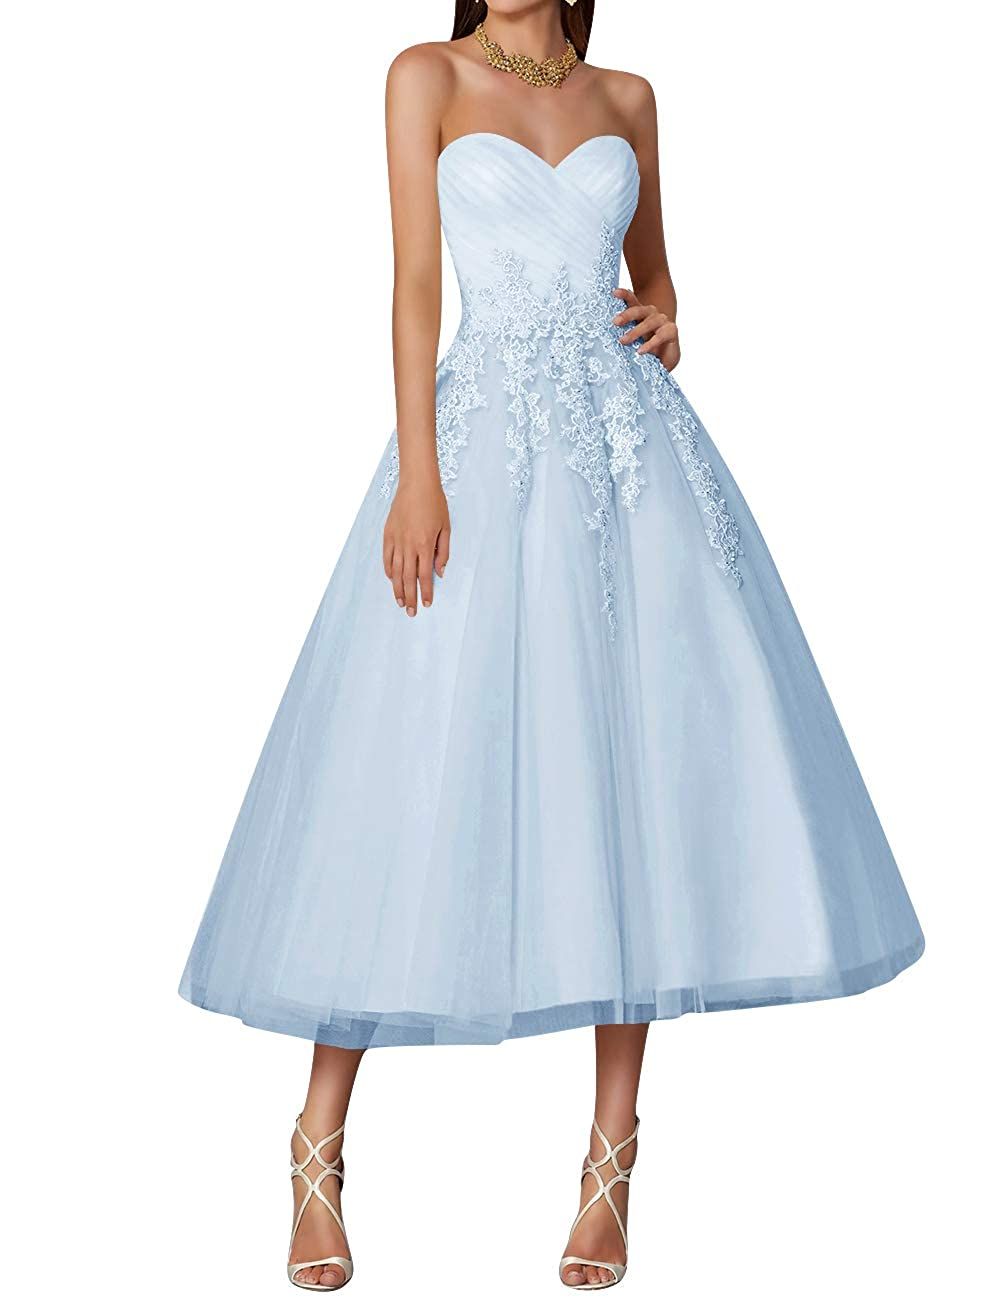 Sky bluee Wedding Dress Tulle Tea Length Prom Party Gowns Sweetheart Lace Vintage